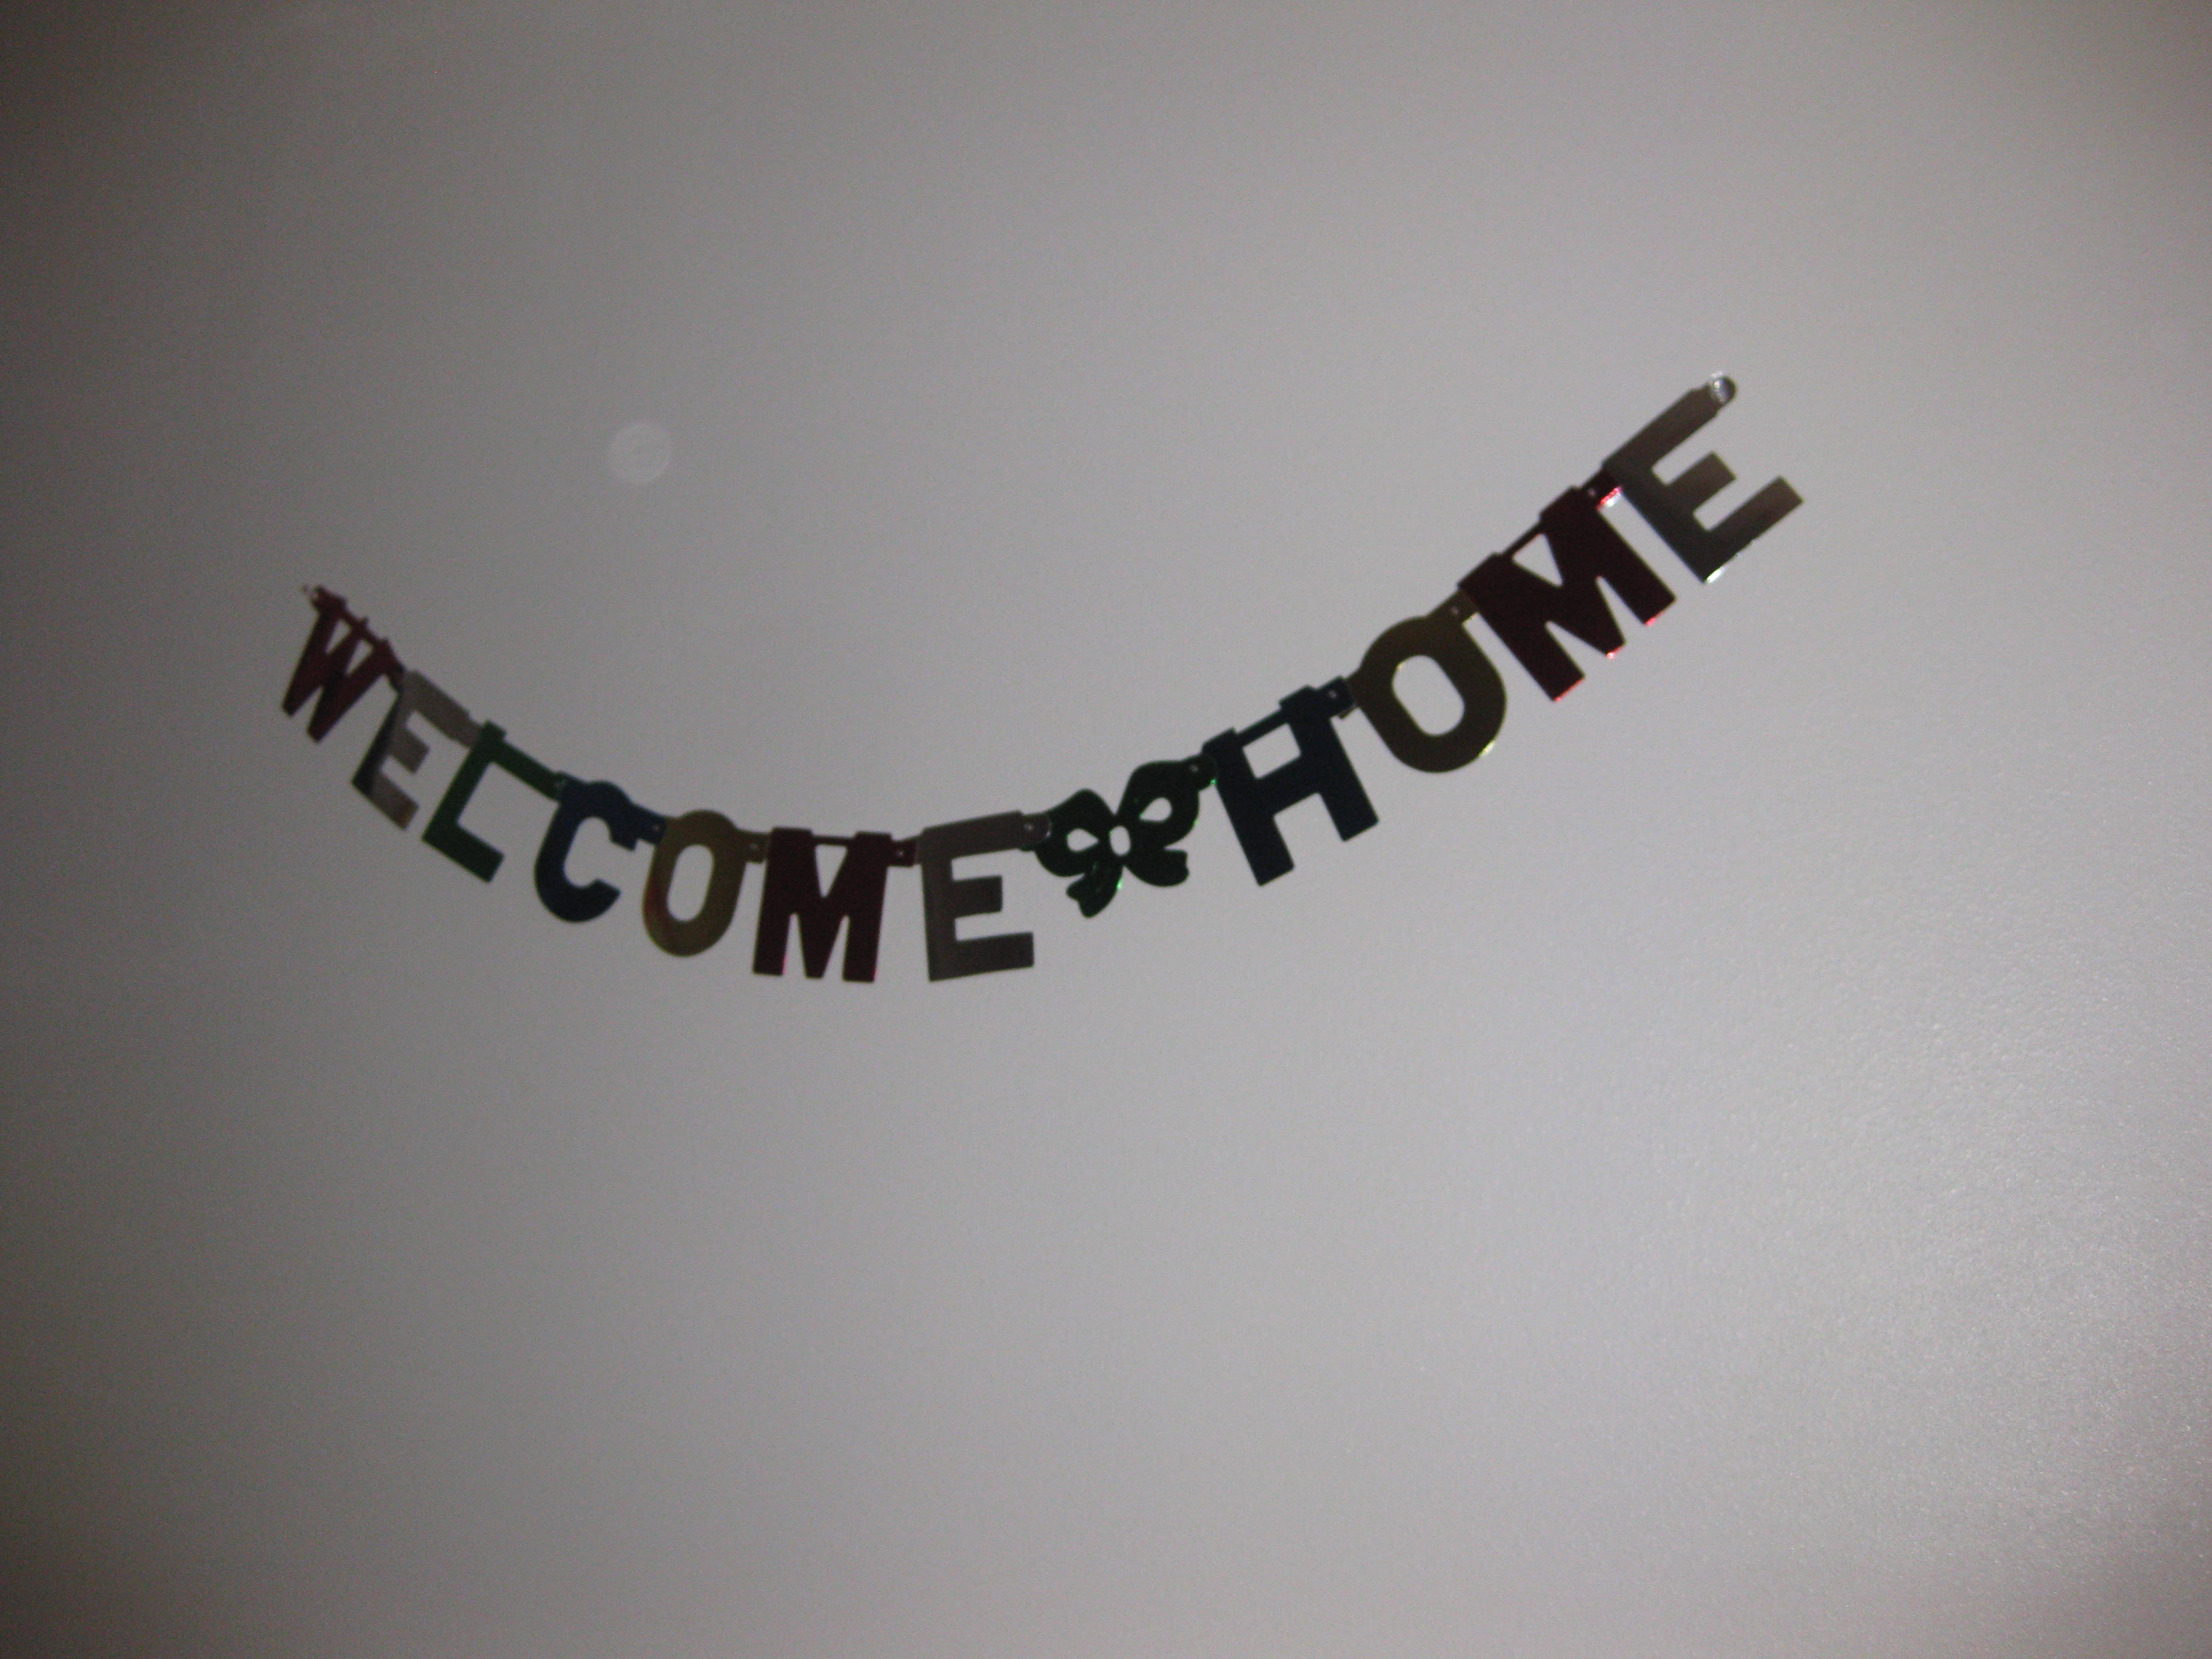 A welcome home sign hung in the kitchen.